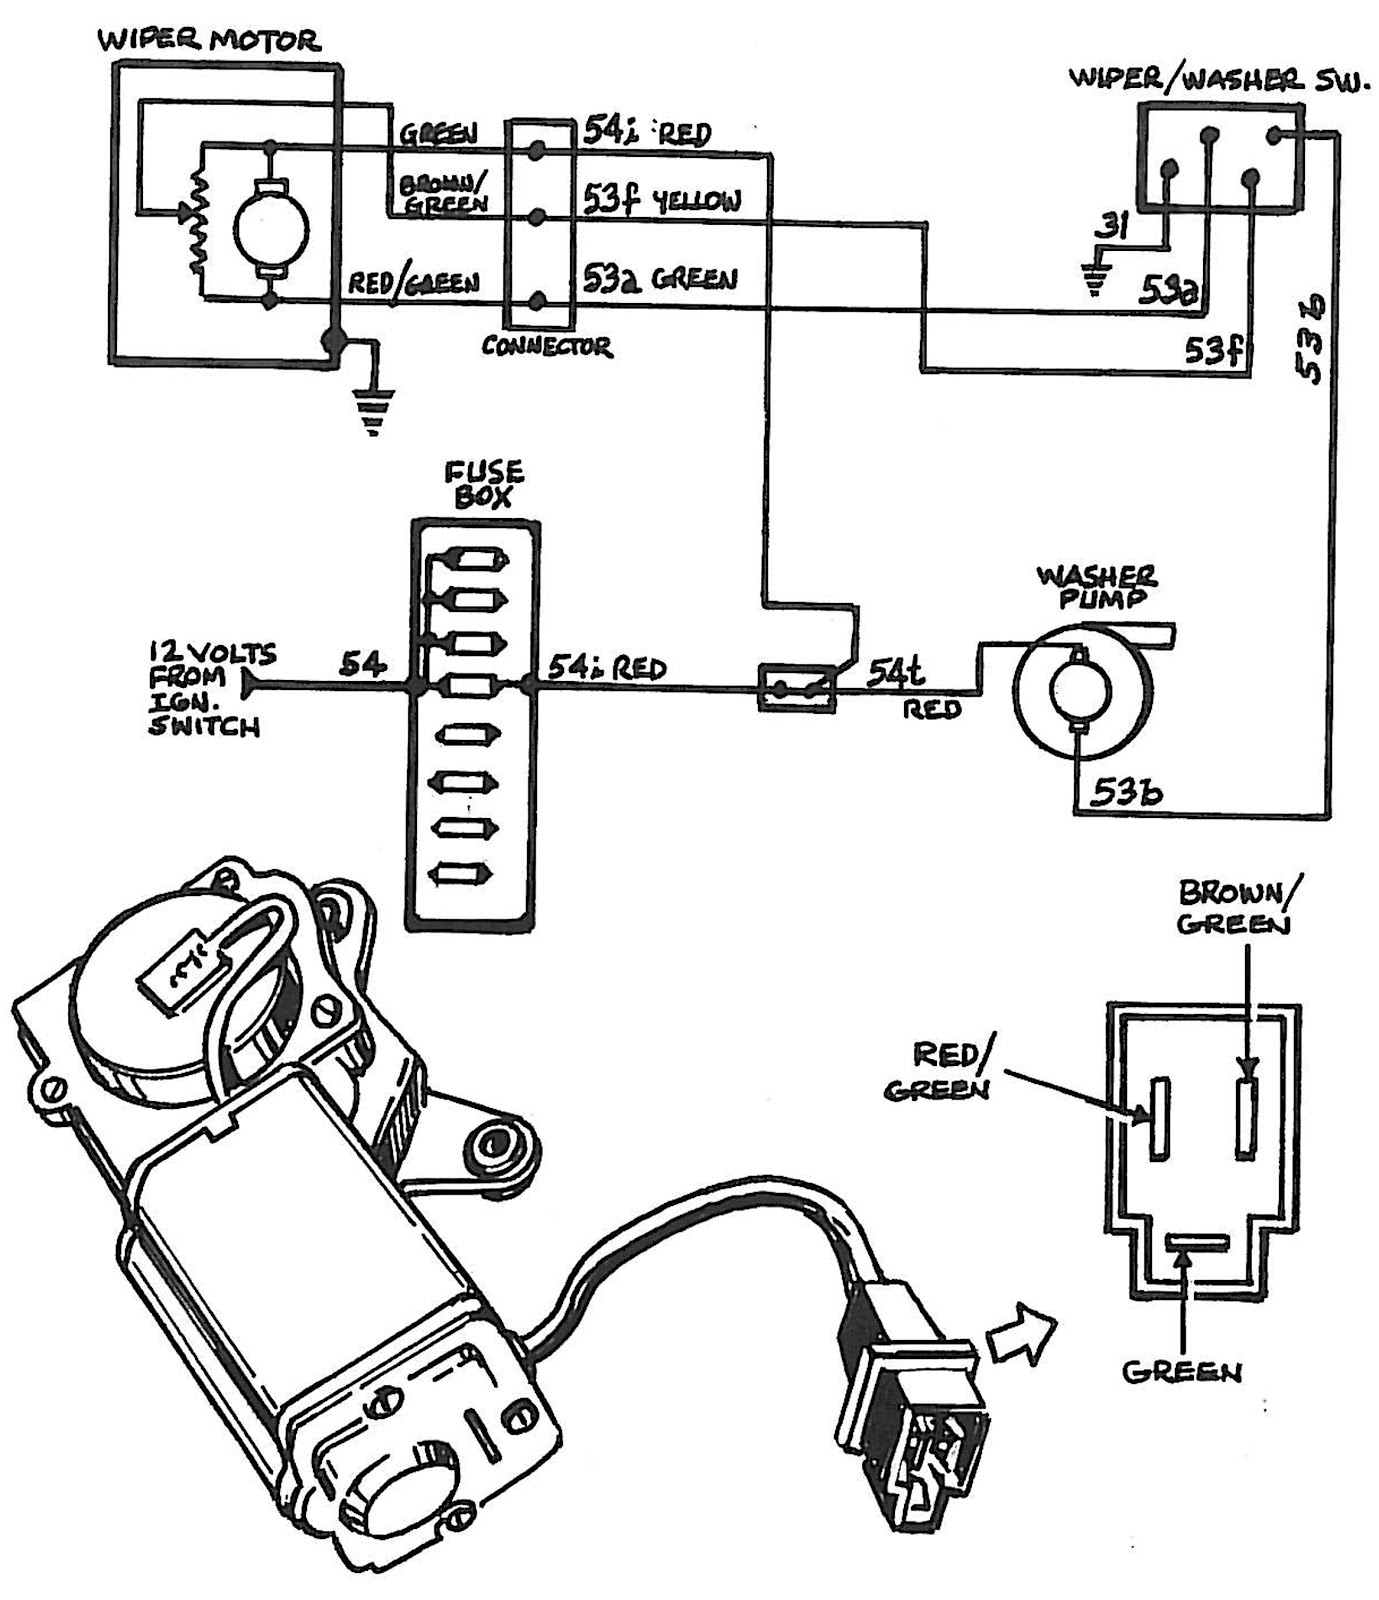 S25C 112021509580 saab journal early windshield wiper motor rebuild wiring diagram for cj5 wiper motor at gsmx.co